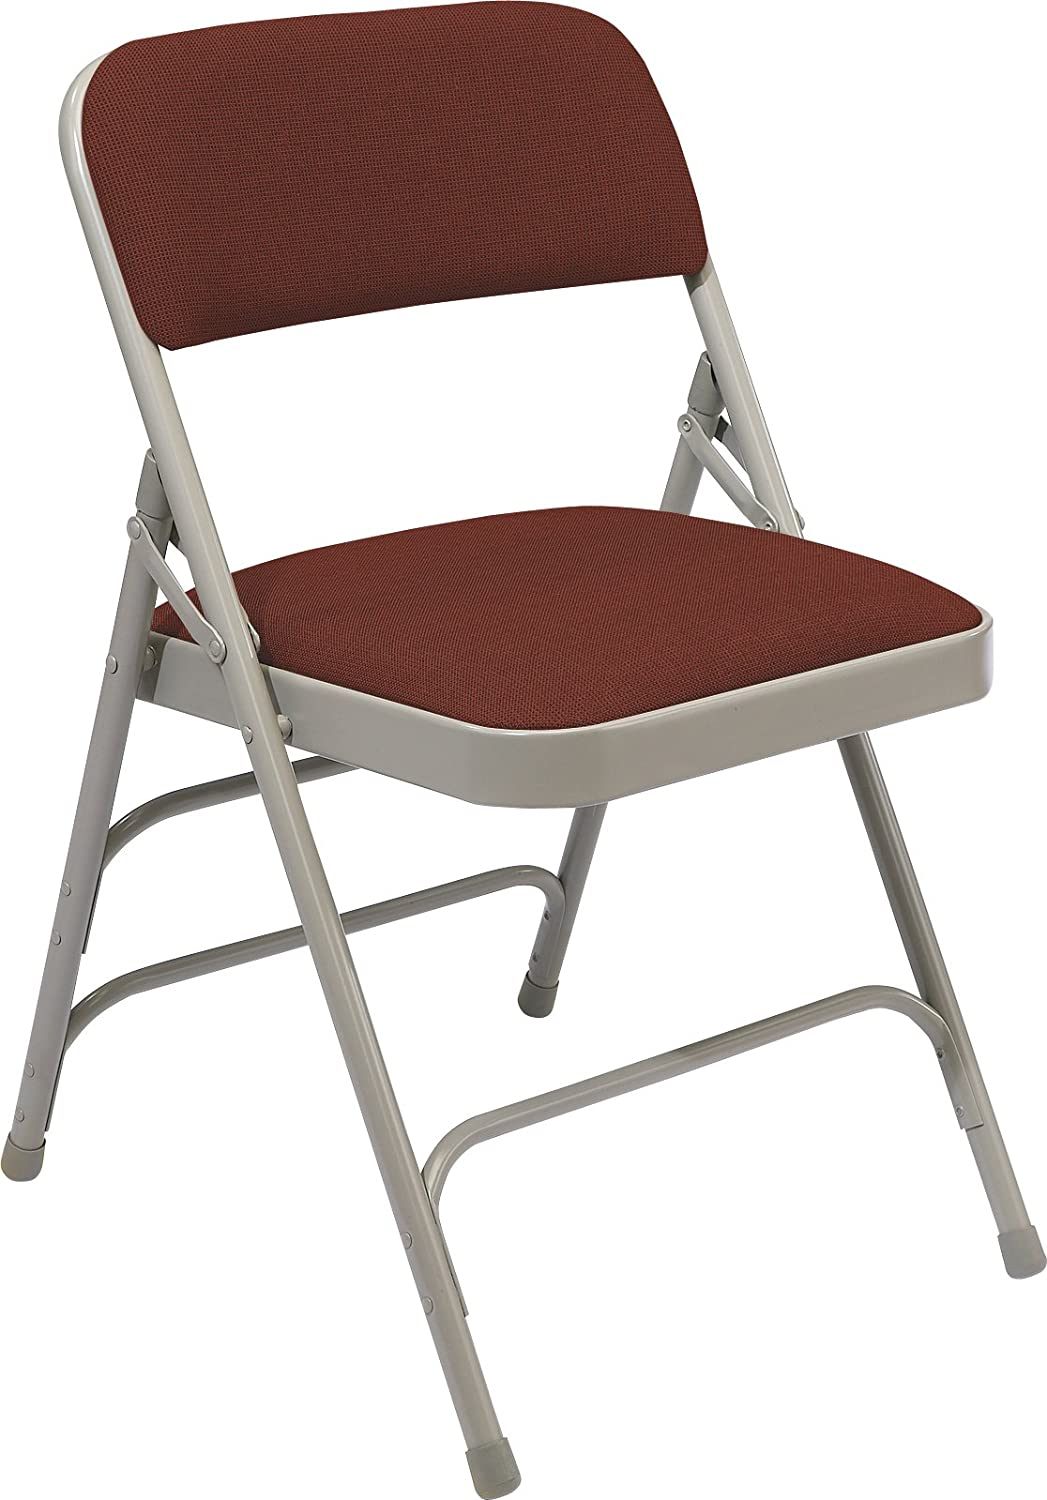 amazoncom national public seating series steel frame upholstered premium fabric seat and back folding chair with triple brace 480 lbs capacity